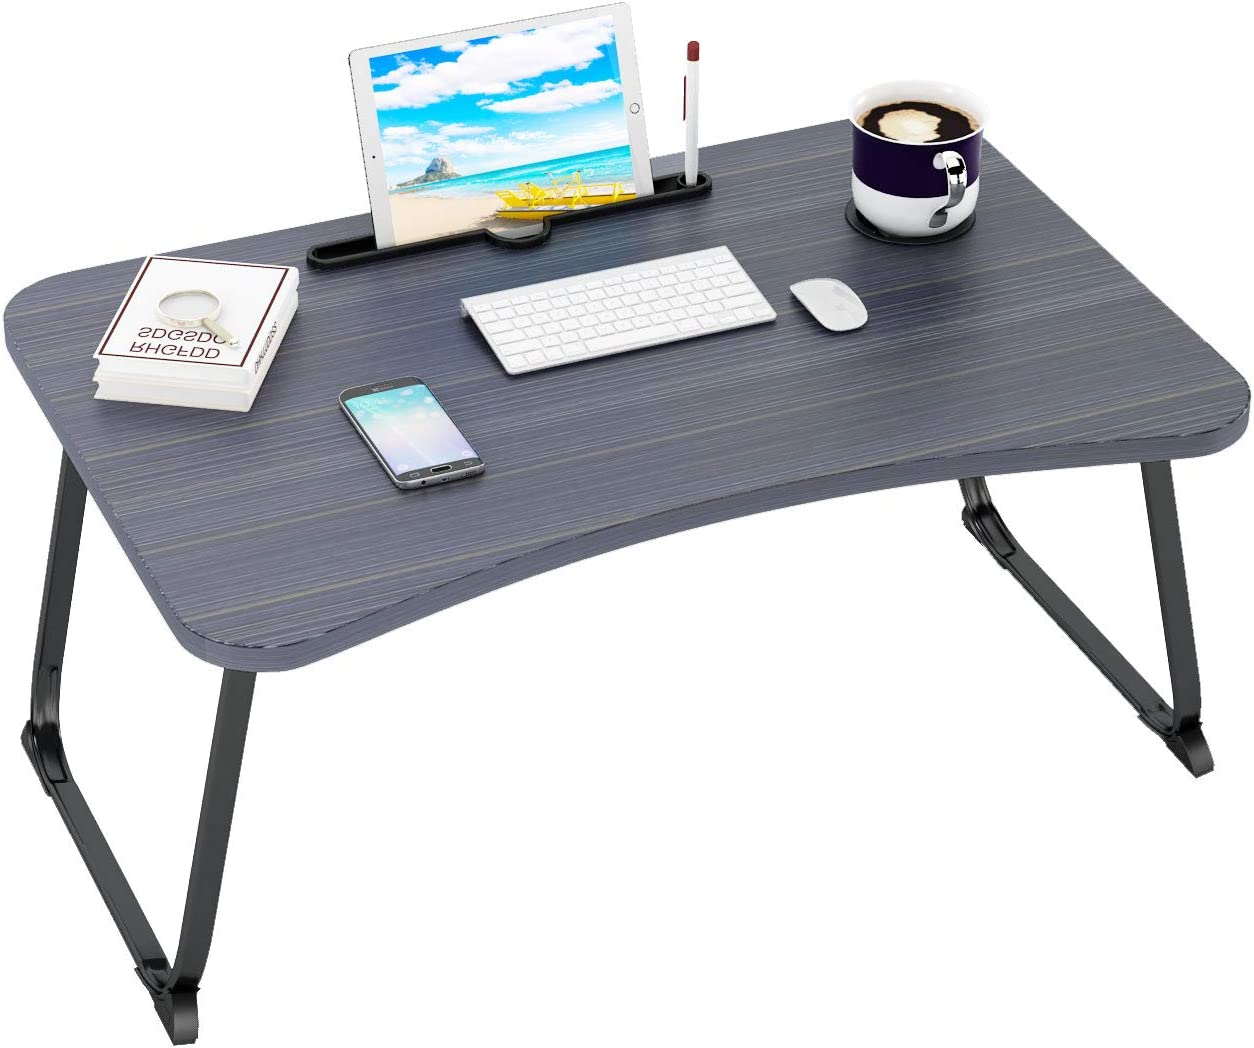 Ruitta Flodable Laptop Bed Table Desk Cup [Alternative dealer] Tray with New mail order